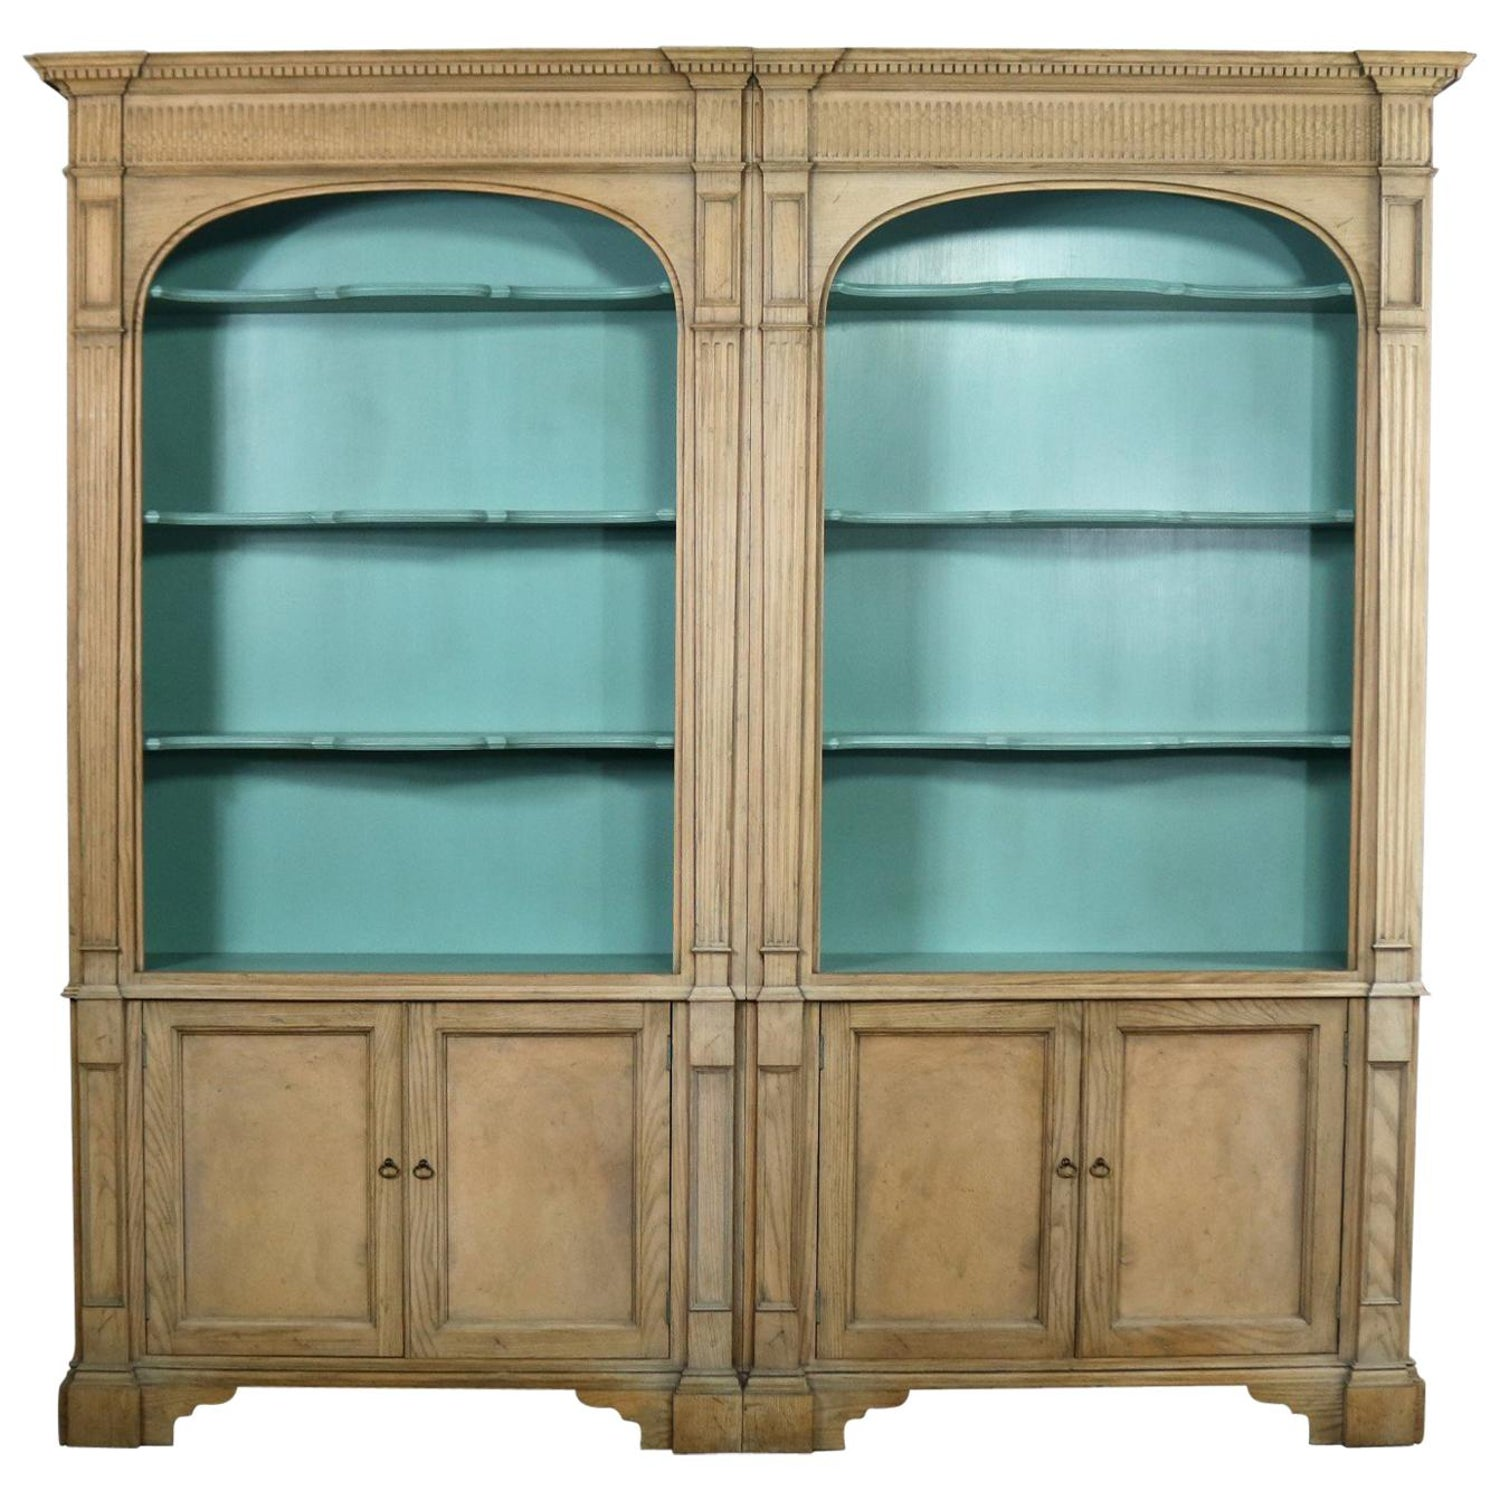 French style cerused bookcases with turquoise interior by baker furniture at 1stdibs